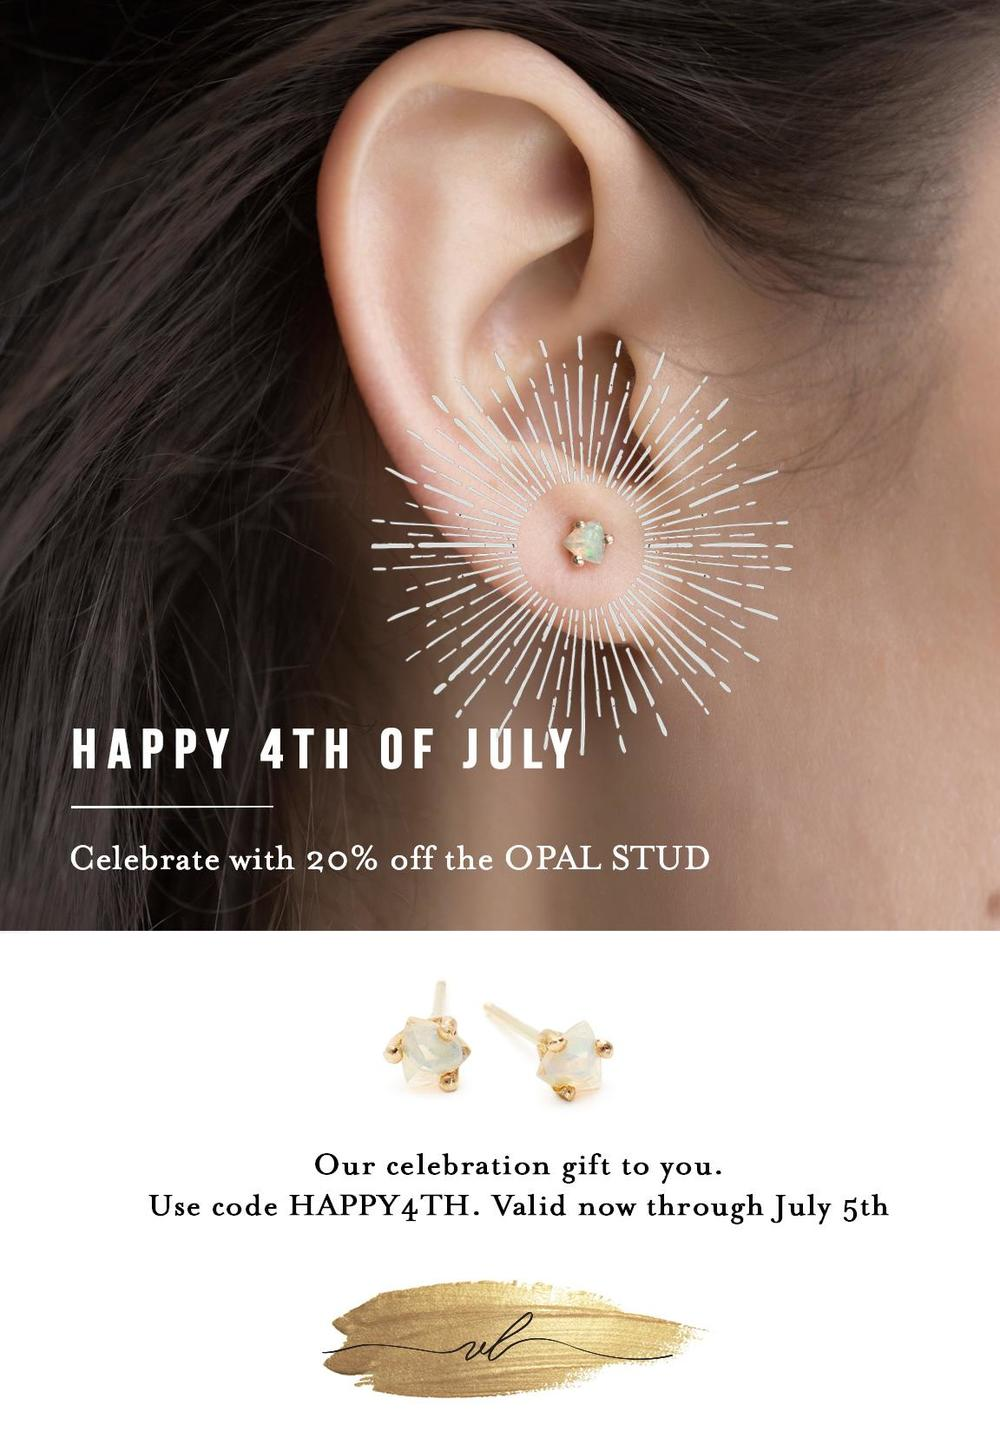 Email Campaign - Happy 4th of July